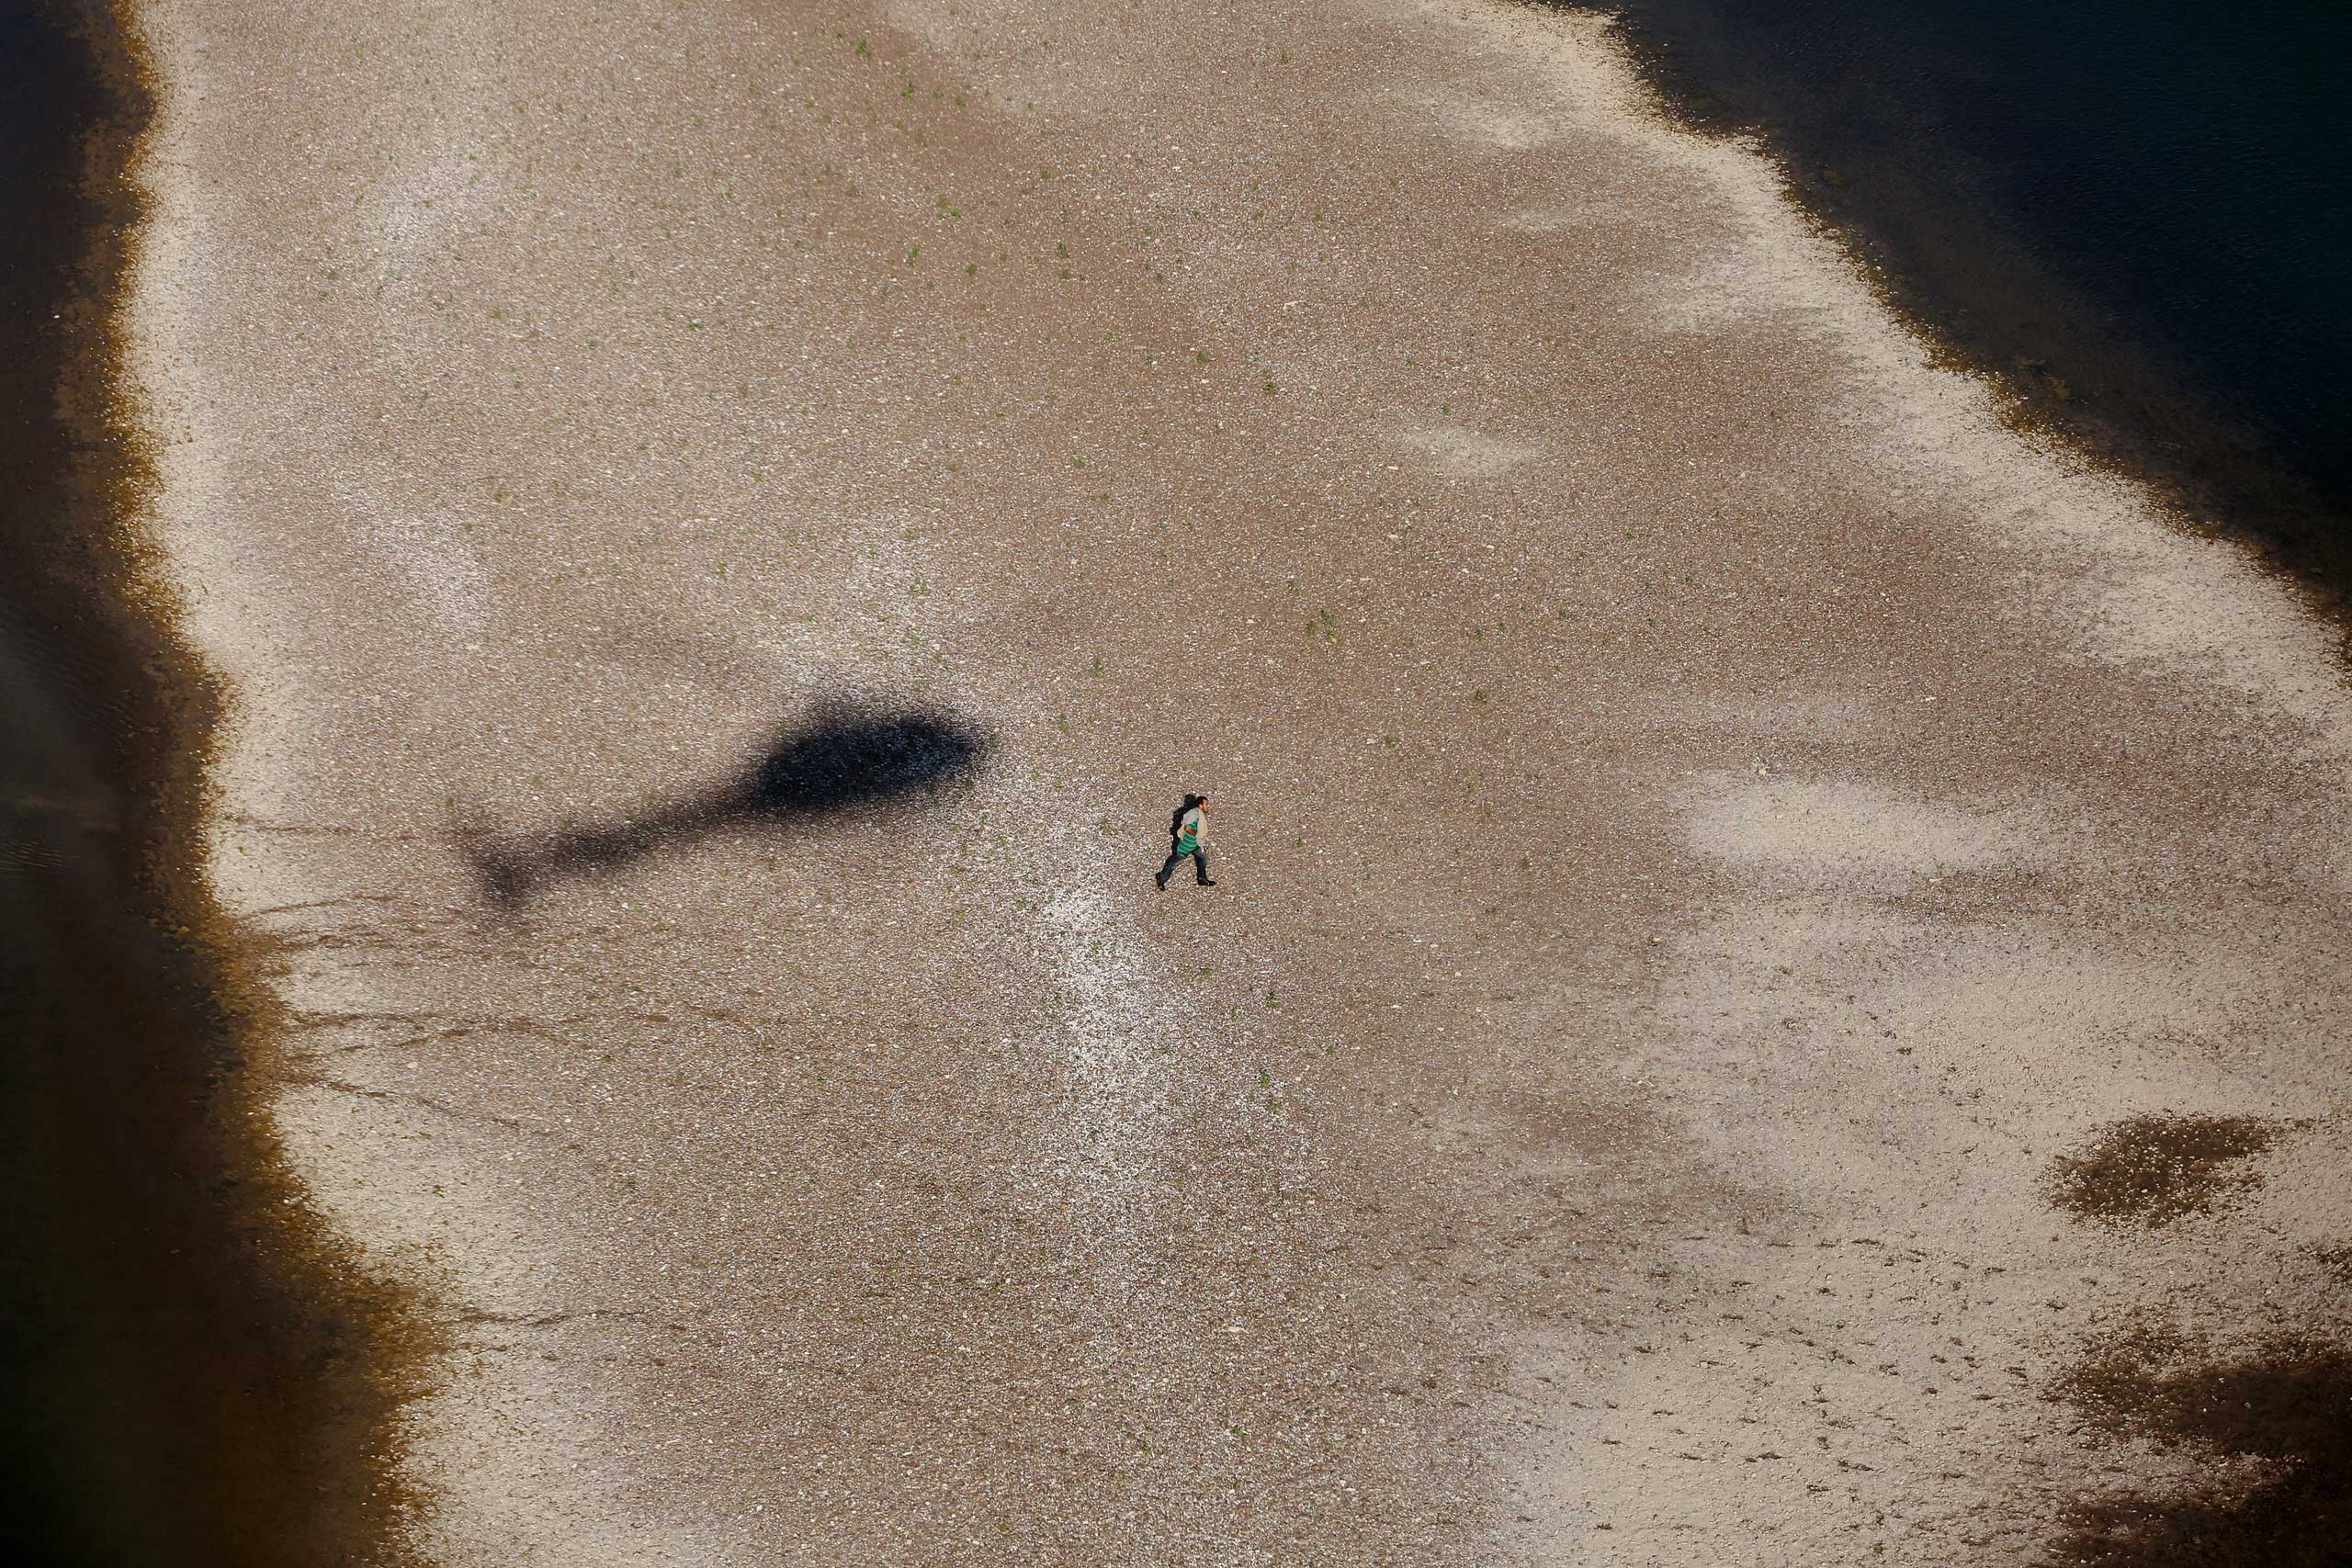 A suspected migrant runs back to Miguel Aleman, Mexico after being pursued by agents near Roma, Texas, Oct. 8, 2014.